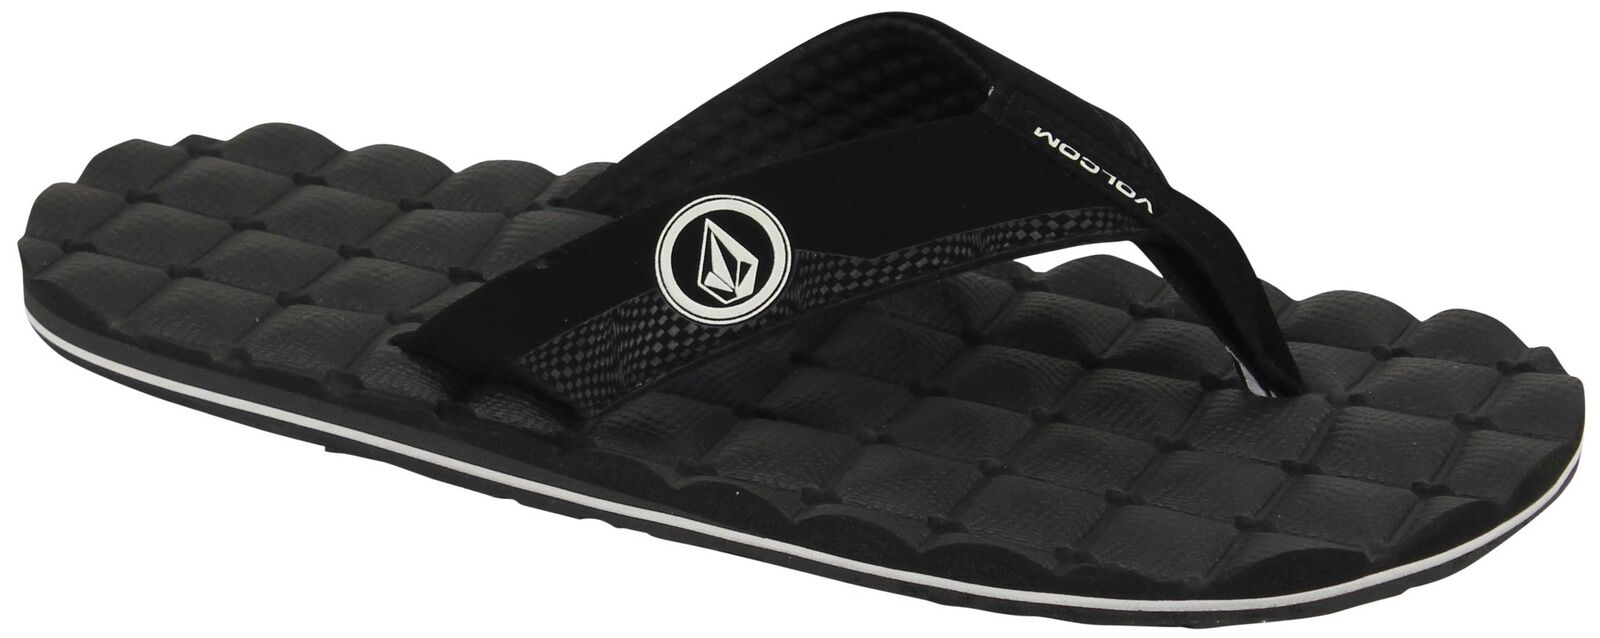 6dbb518c909e77 Volcom Recliner Mens Sandal 10 BWH for sale online